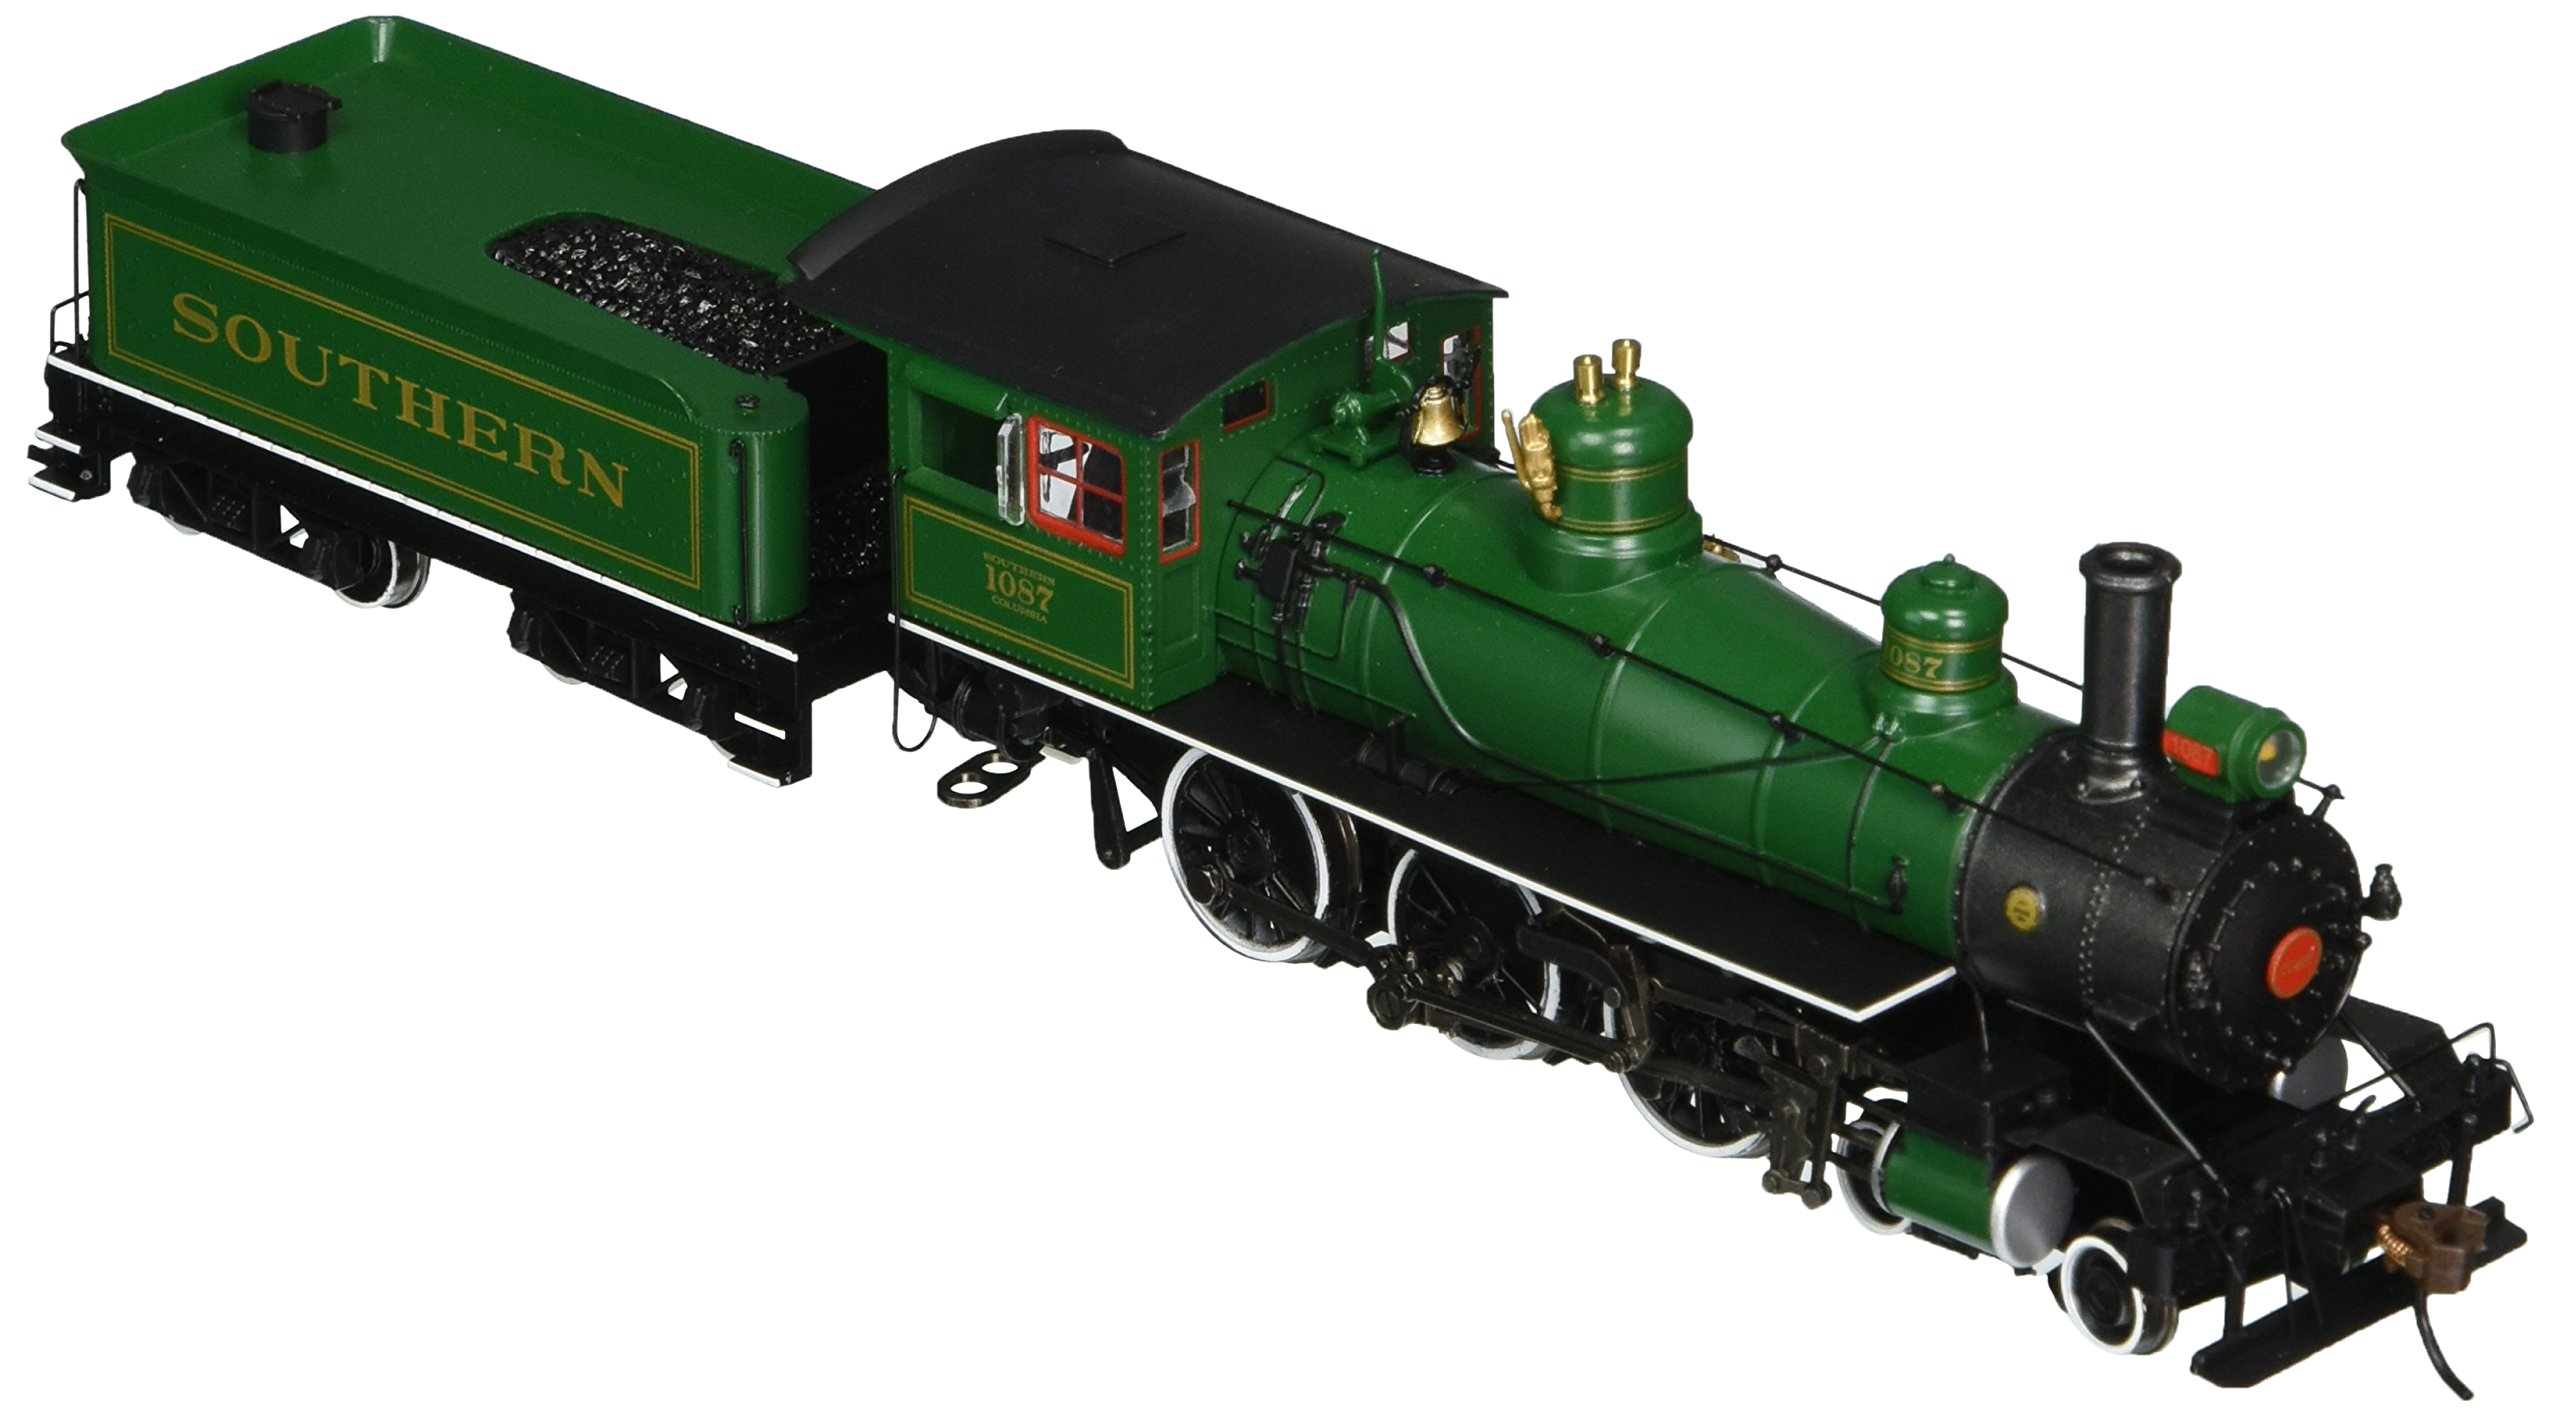 Bachmann Industries Baldwin 52'' Driver 4-6-0 DCC Sound Value Equipped Locomotive - SOUTHERN #1087 - (1:87 HO Scale), Green